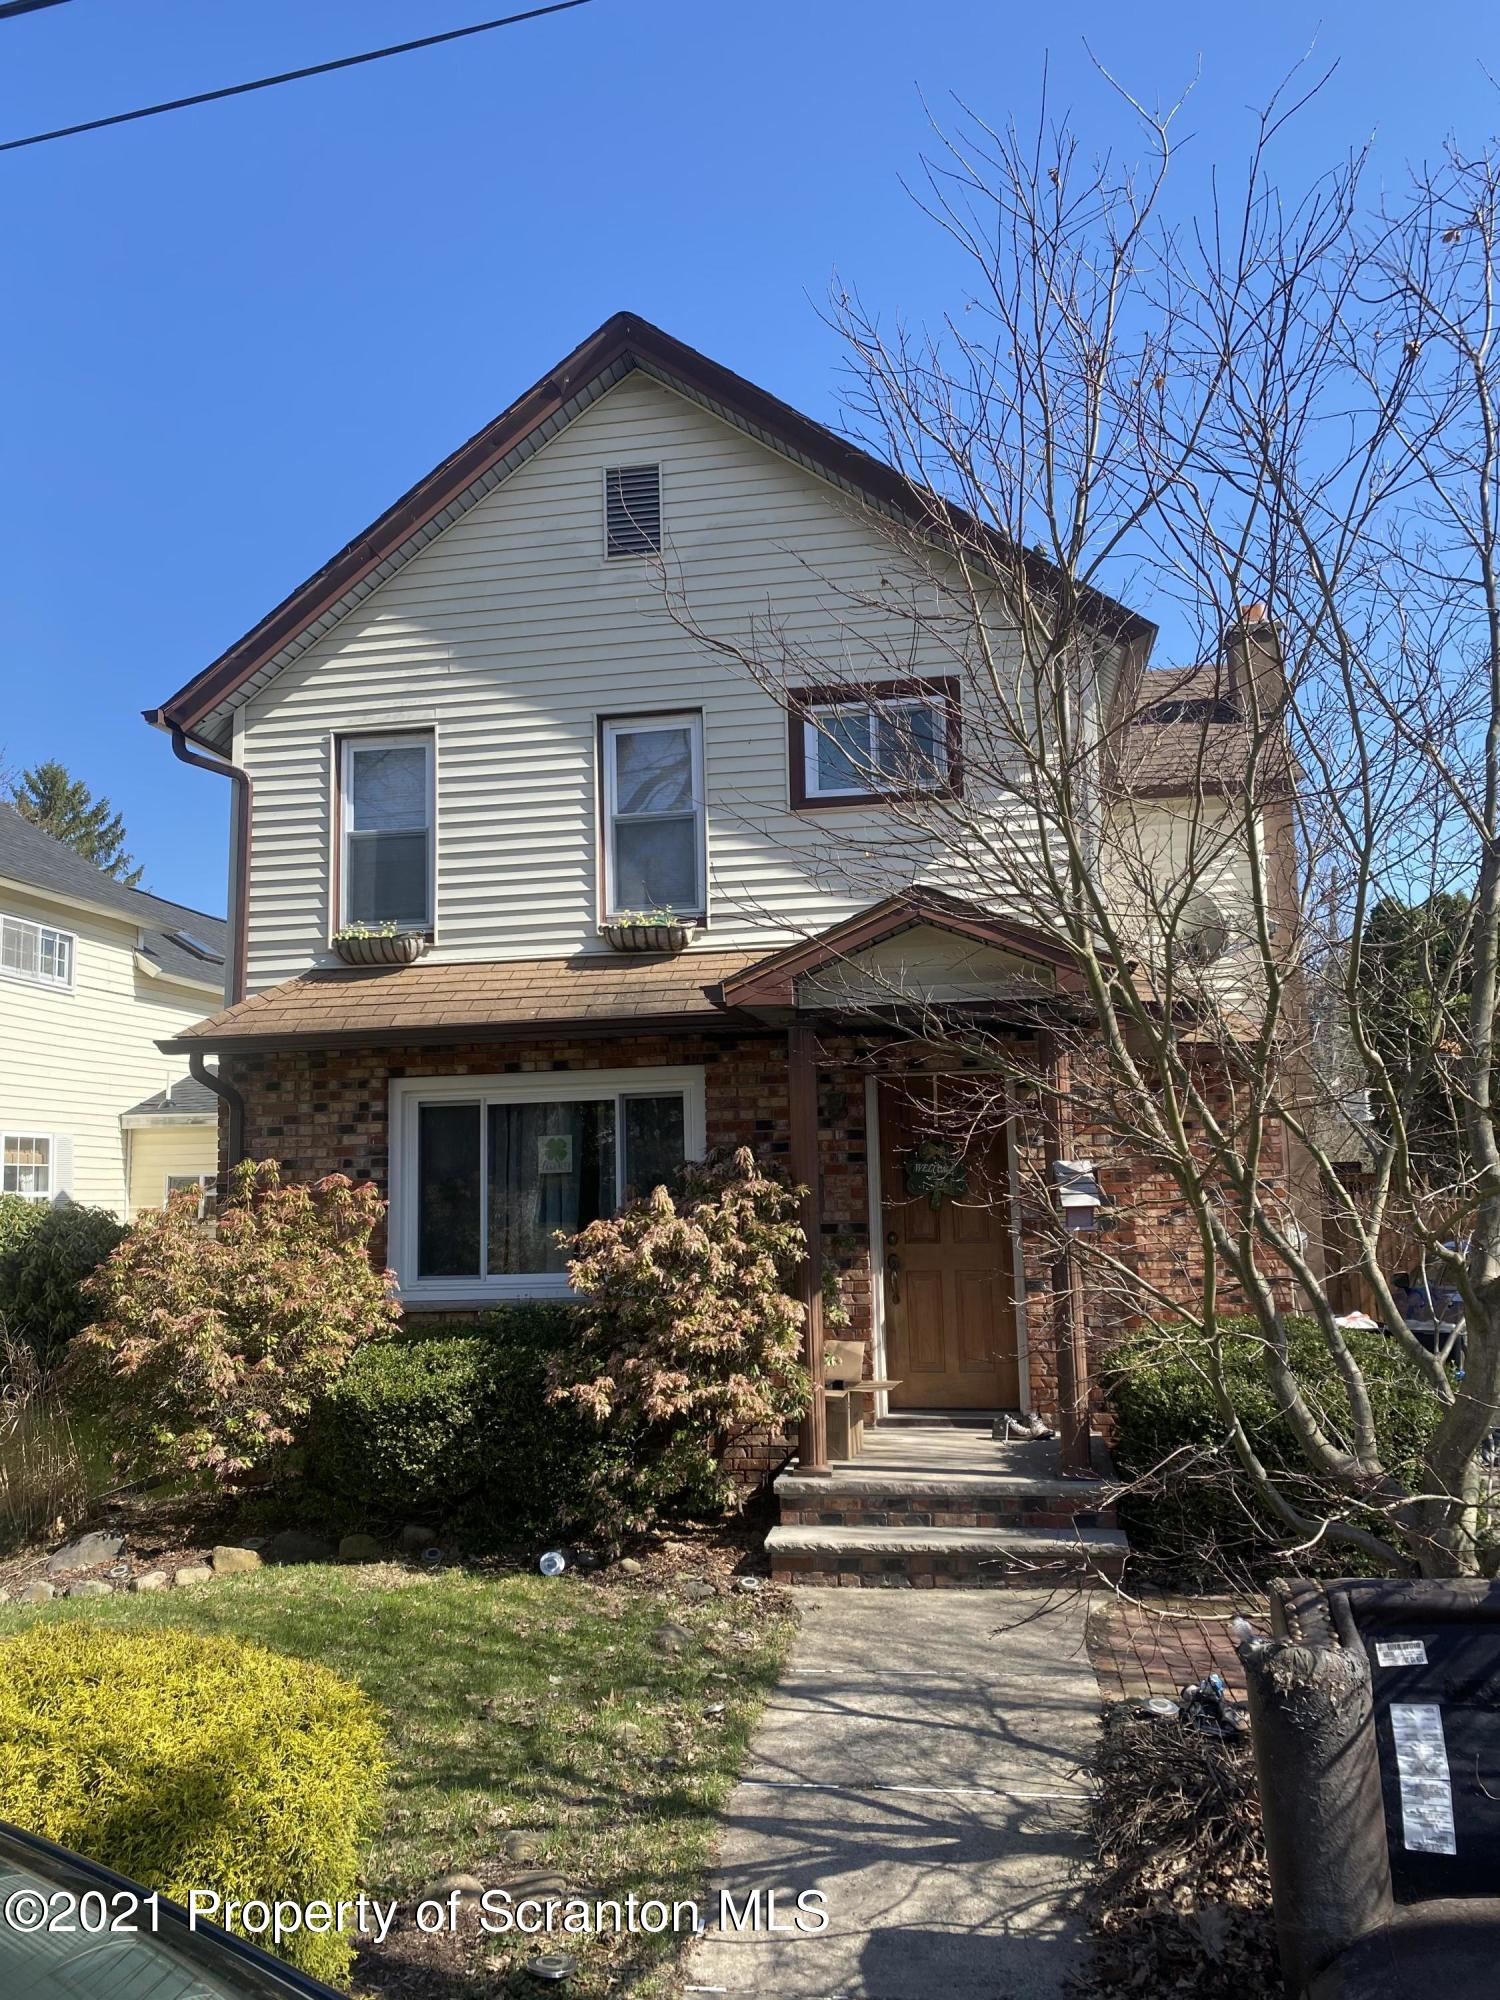 312 Rose St, Peckville, Pennsylvania 18452, 3 Bedrooms Bedrooms, 5 Rooms Rooms,1 BathroomBathrooms,Single Family,For Sale,Rose,21-1136